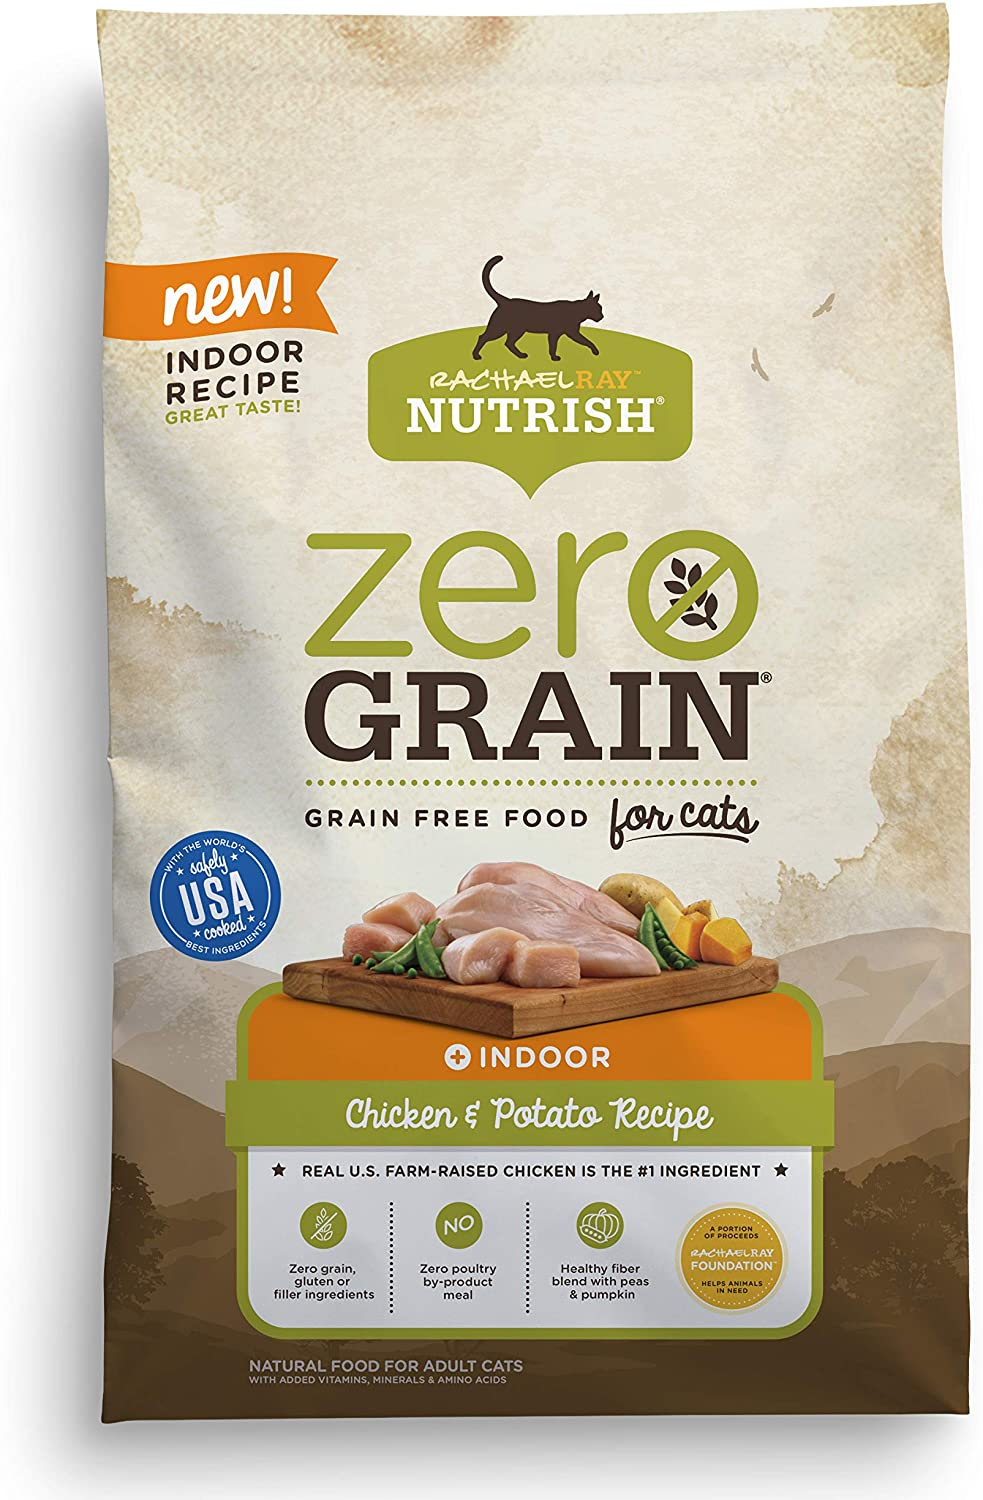 Rachael Ray Nutrish Zero Grain Dry Cat Food for Indoor Cats, Grain Free